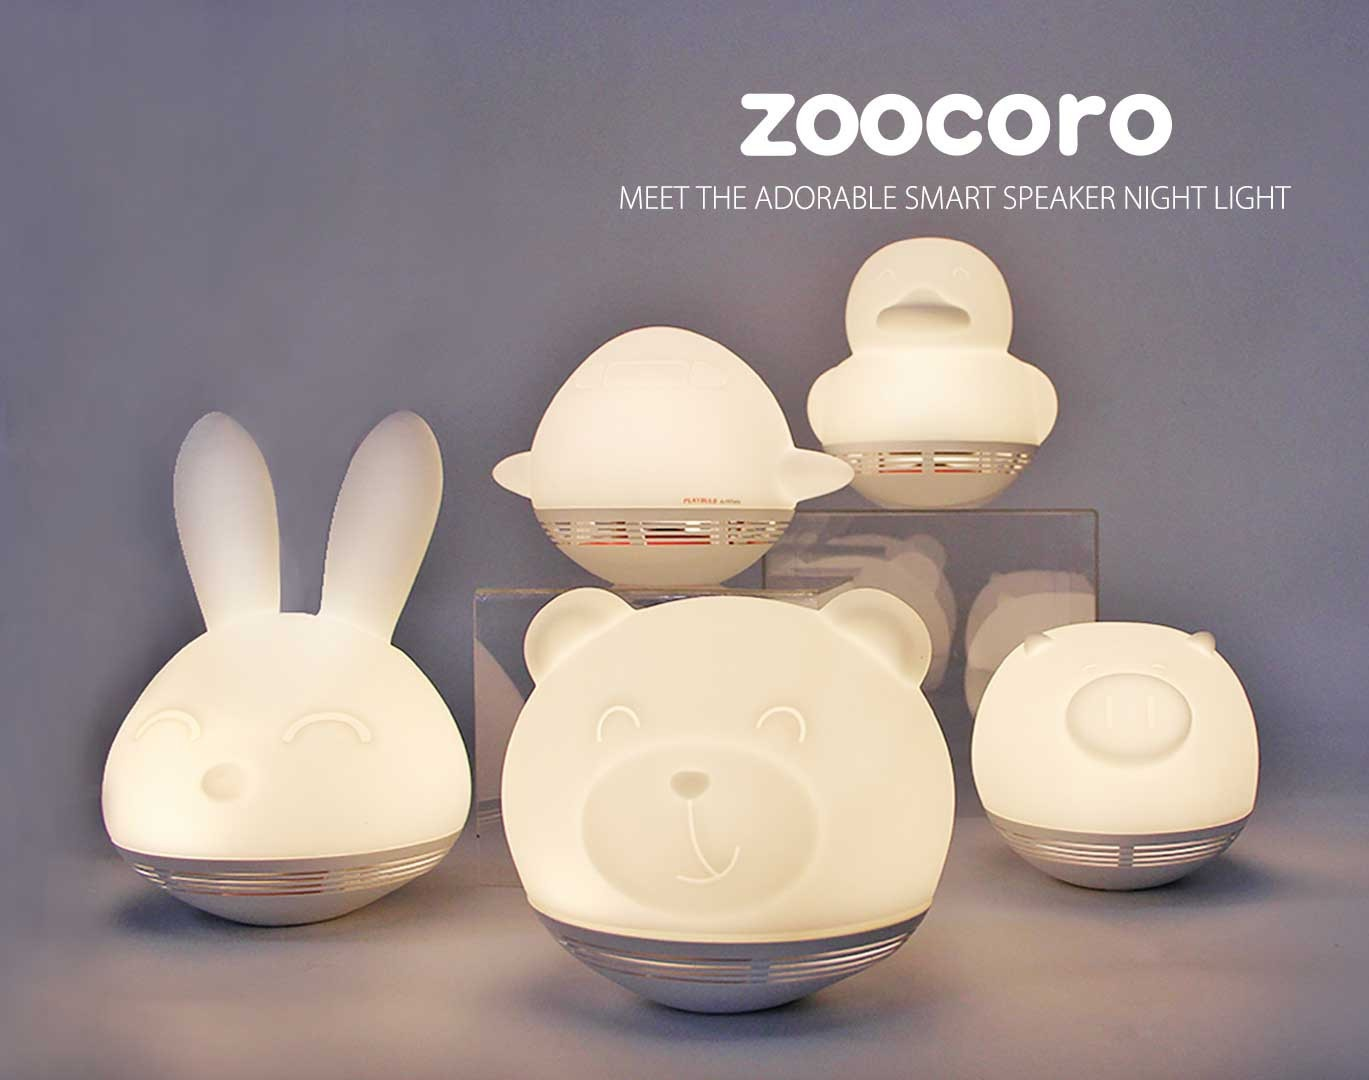 mipow-zoocoro-airwhale